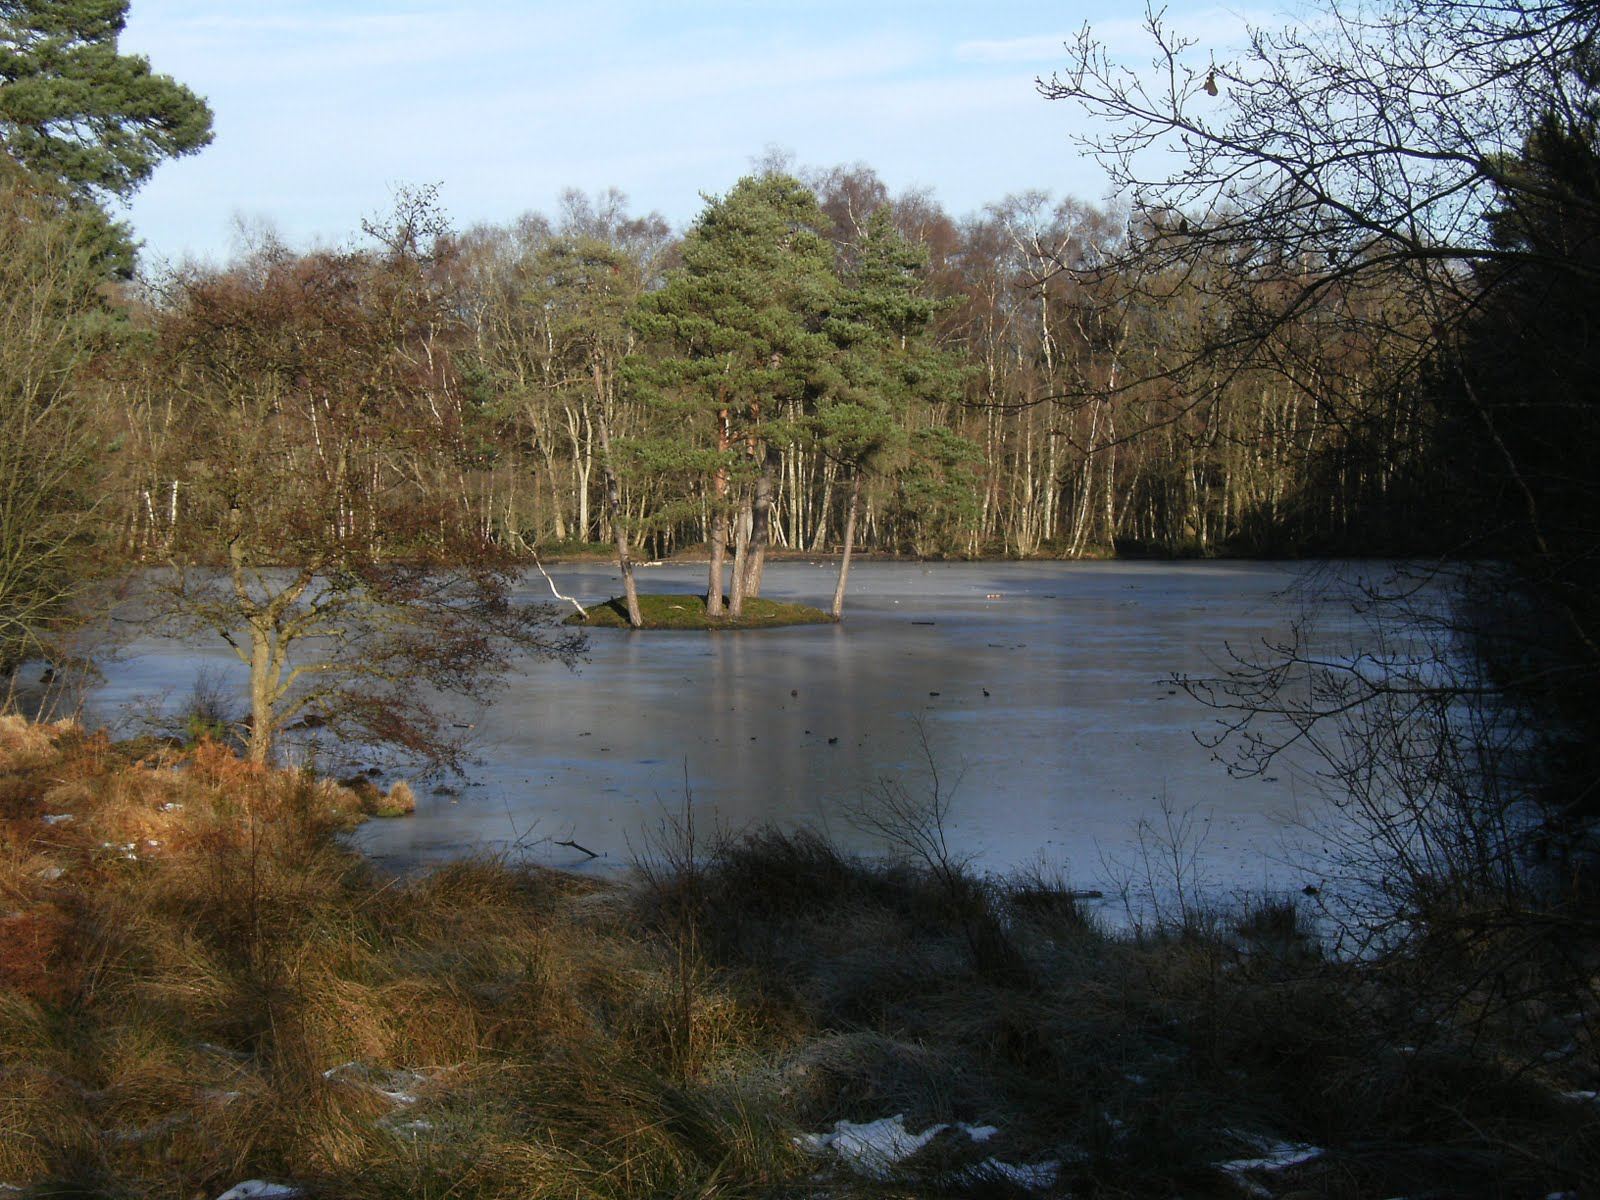 2009 12280011 Heath Pond in winter